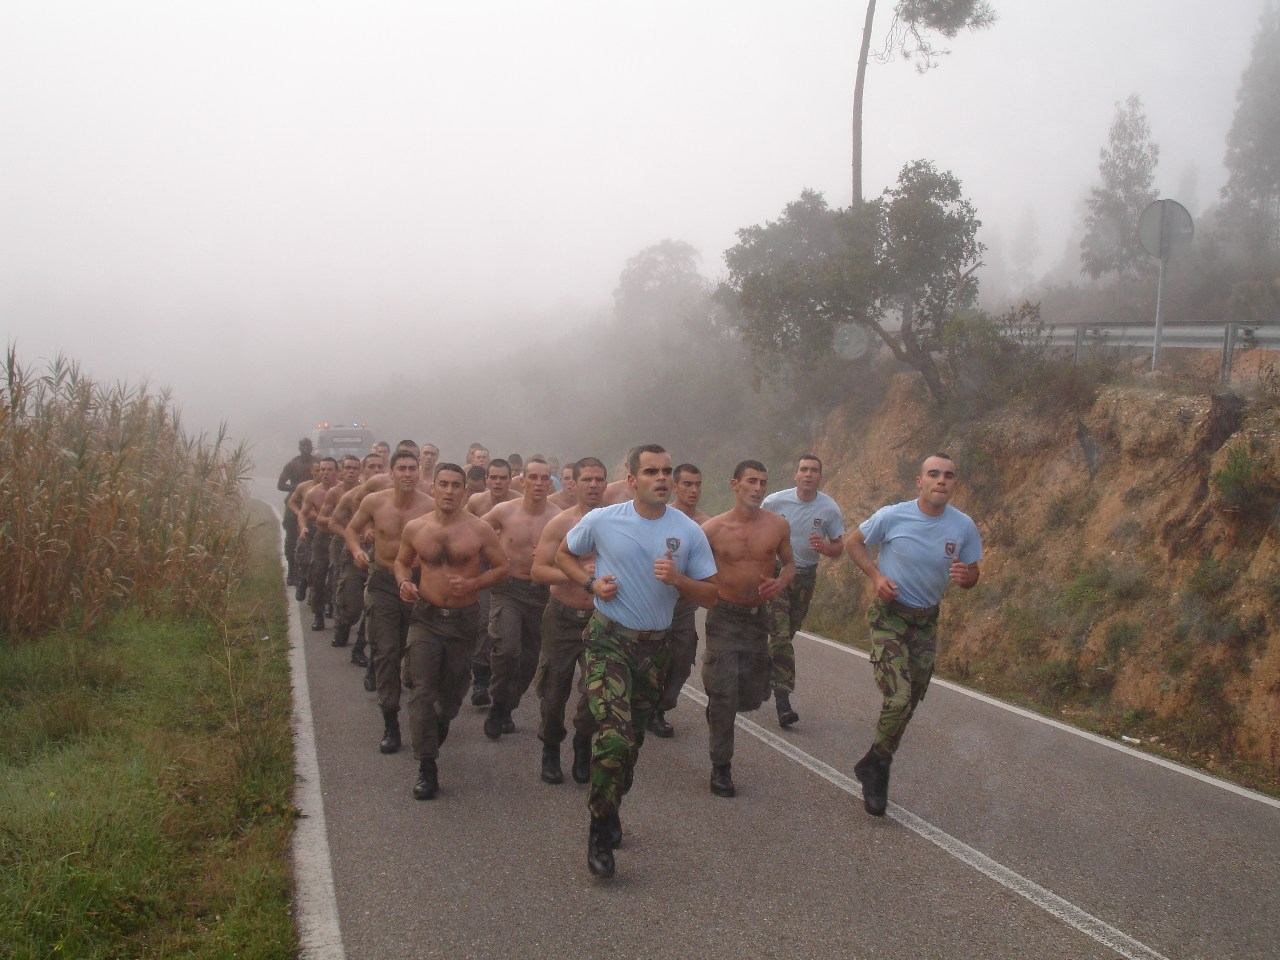 a platoon running in formation in the street